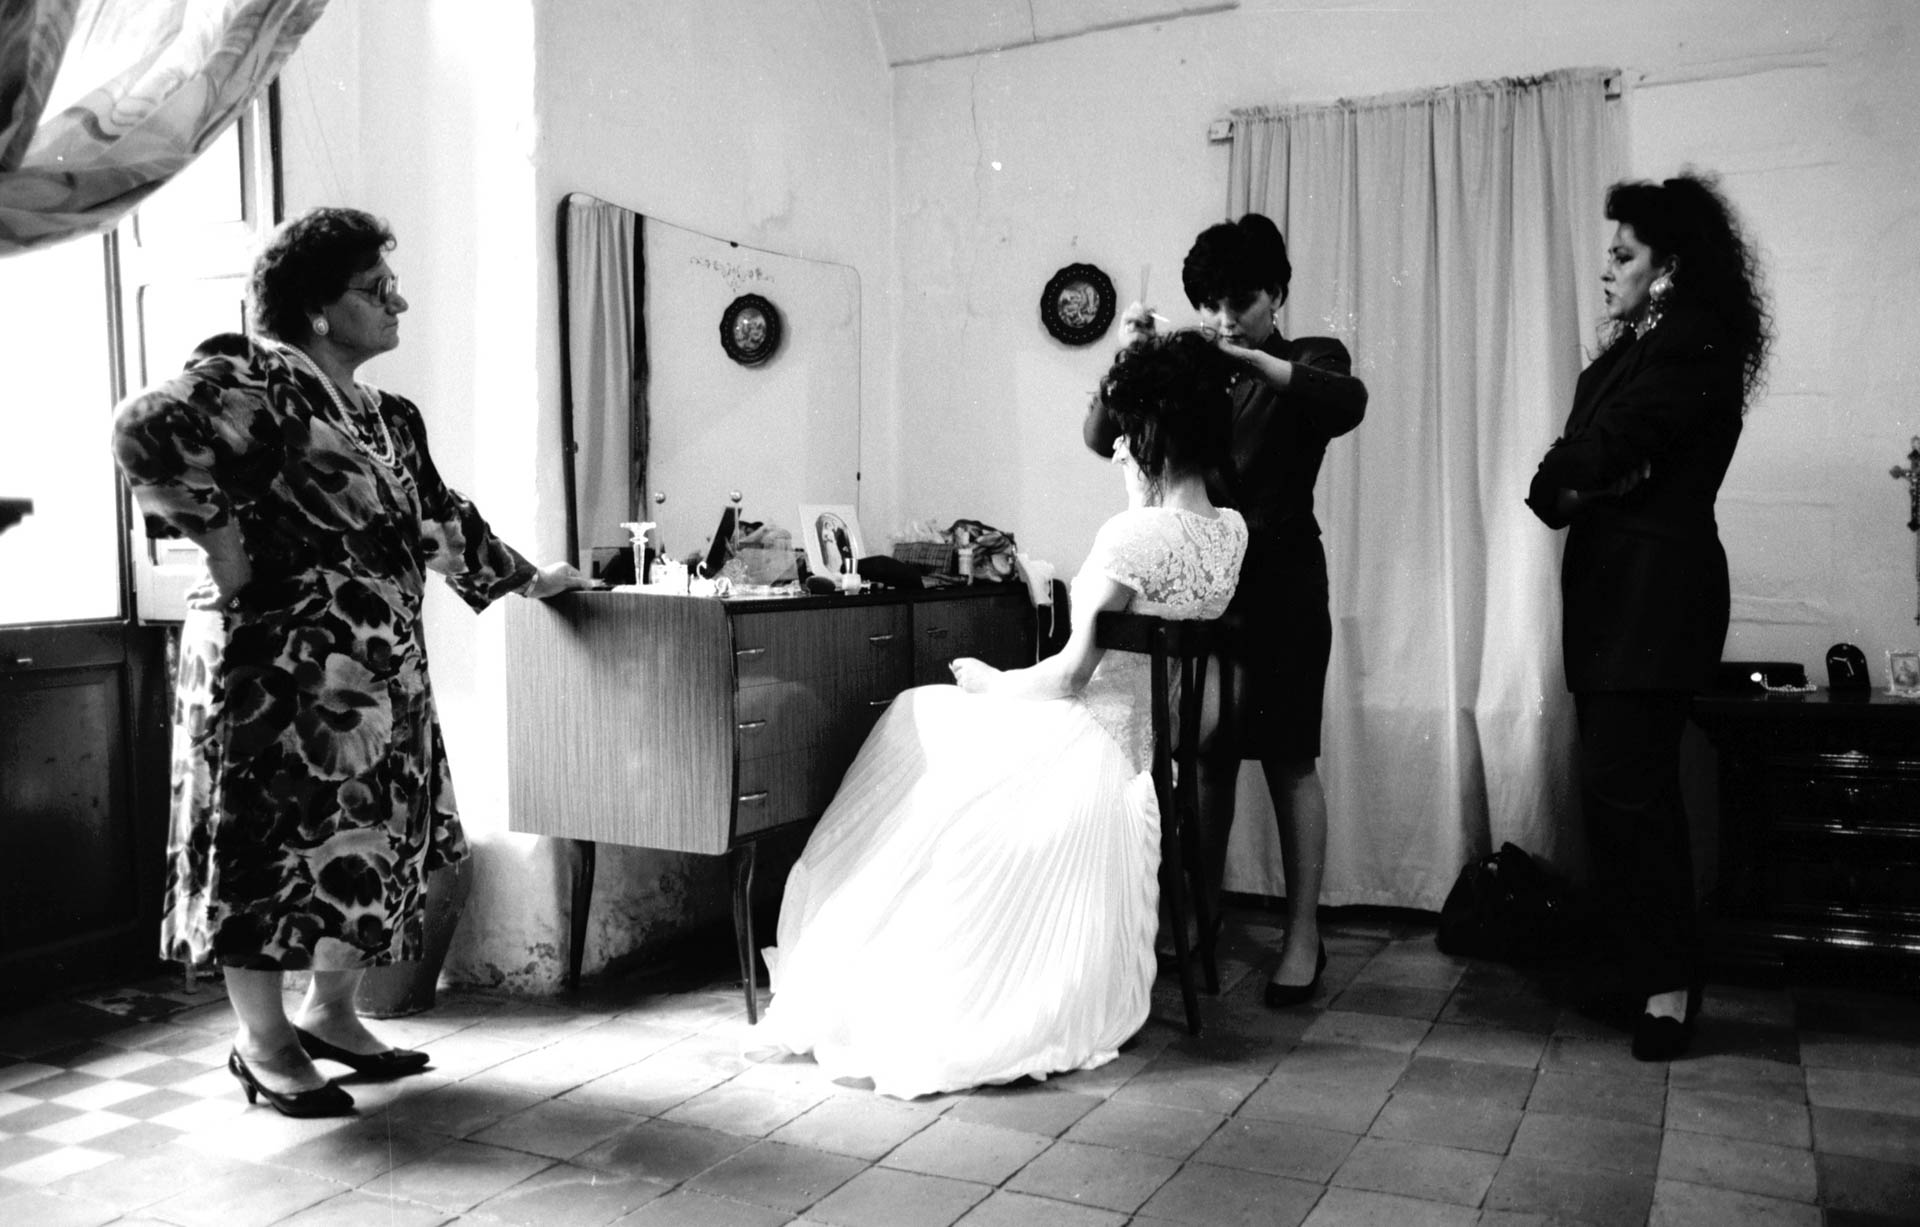 Matera, Italy - 19 October 1991 Preparation and dressing of the bride, assisted by the bride's maids.